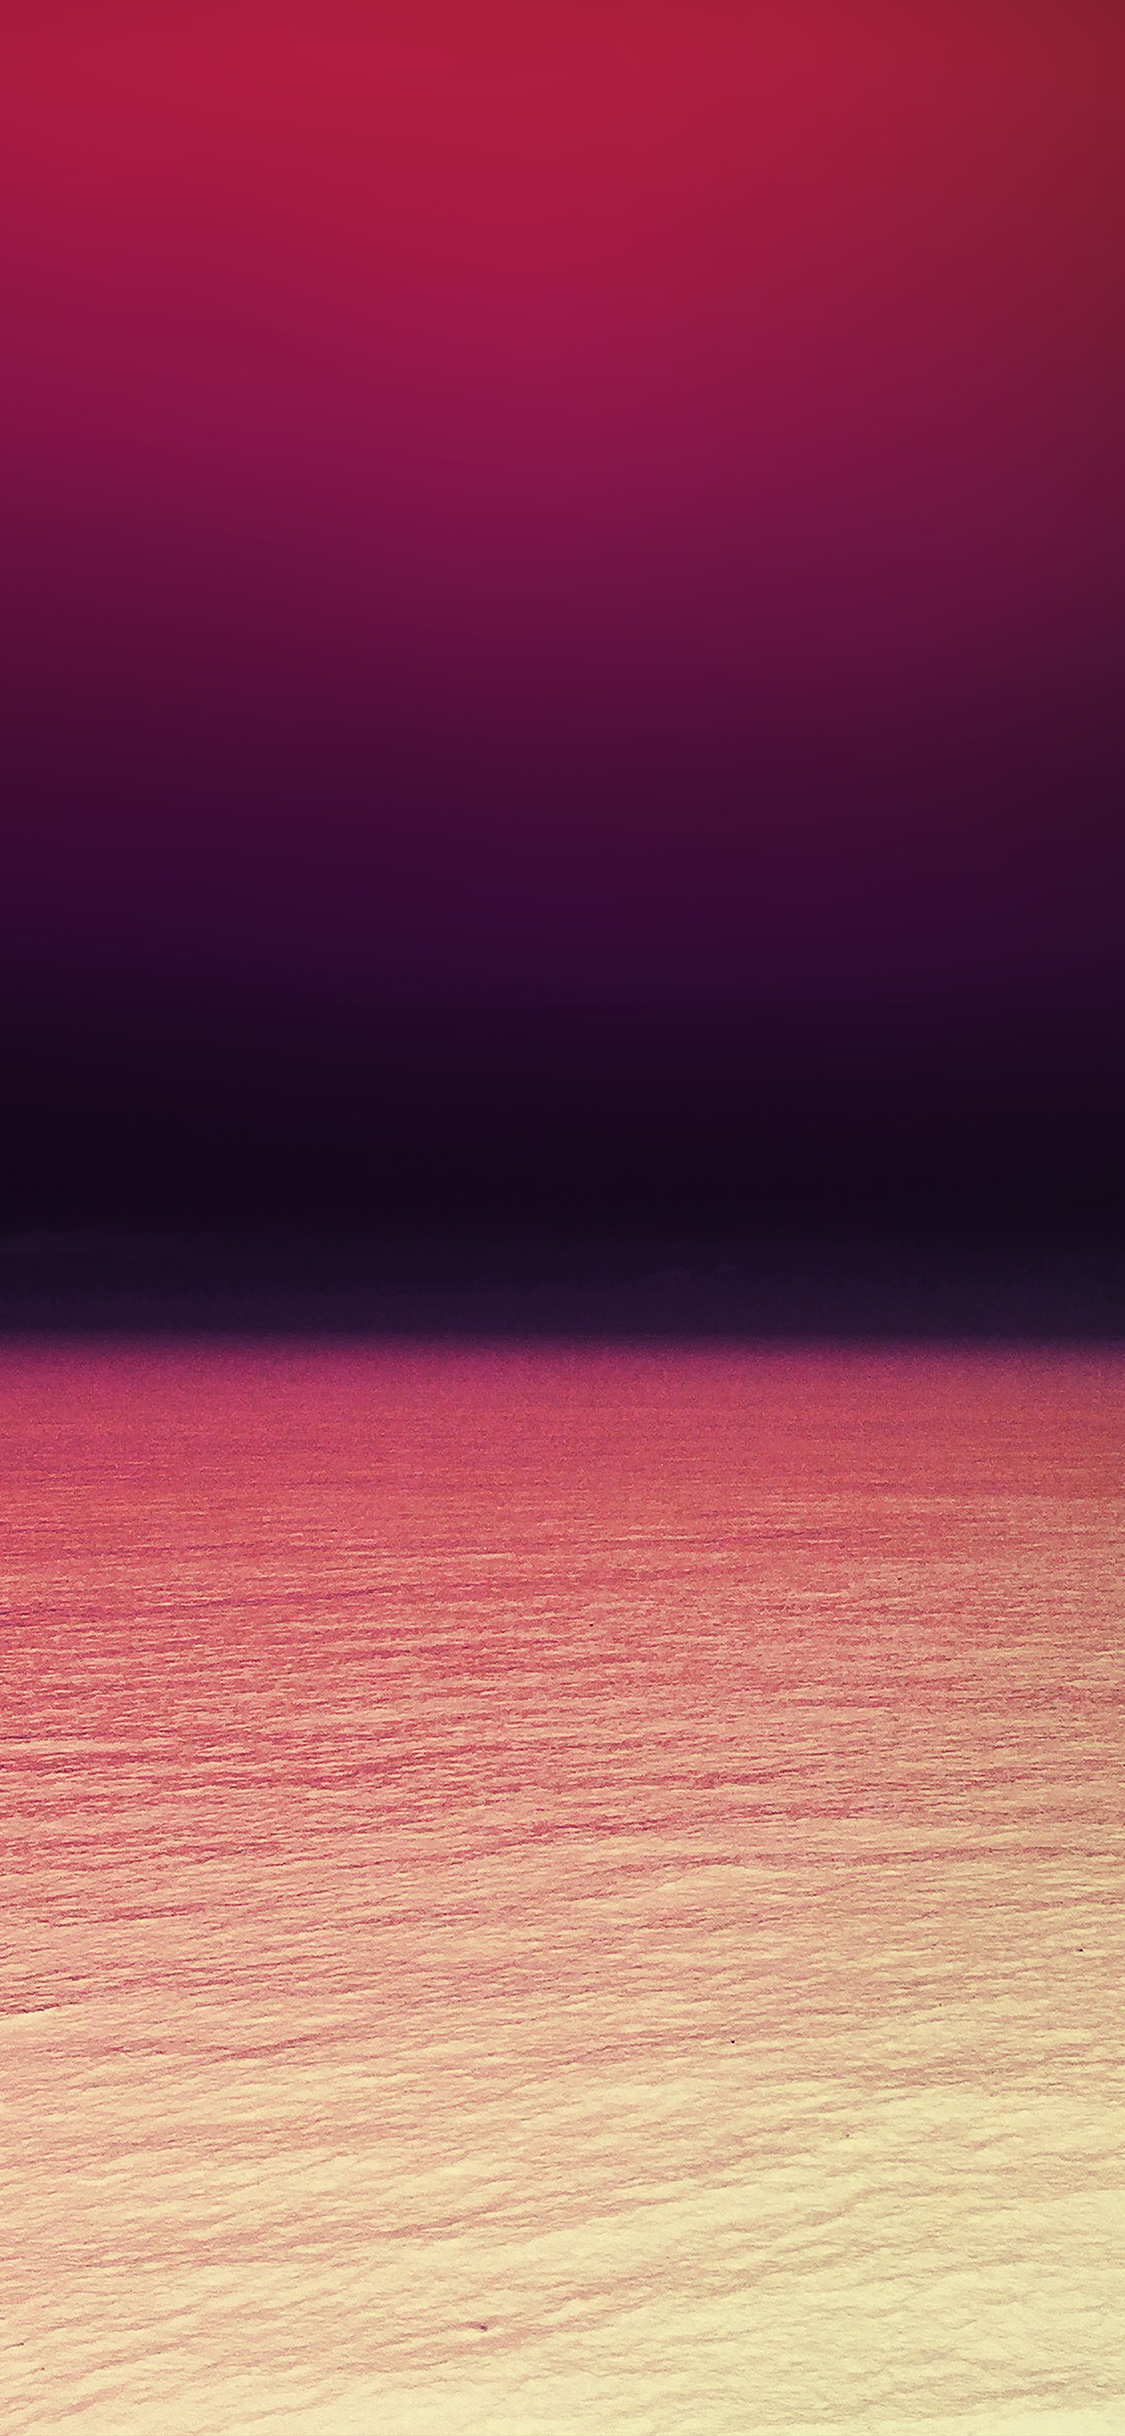 iPhonexpapers.com-Apple-iPhone-wallpaper-na12-calm-sea-purple-red-ocean-water-summer-day-nature